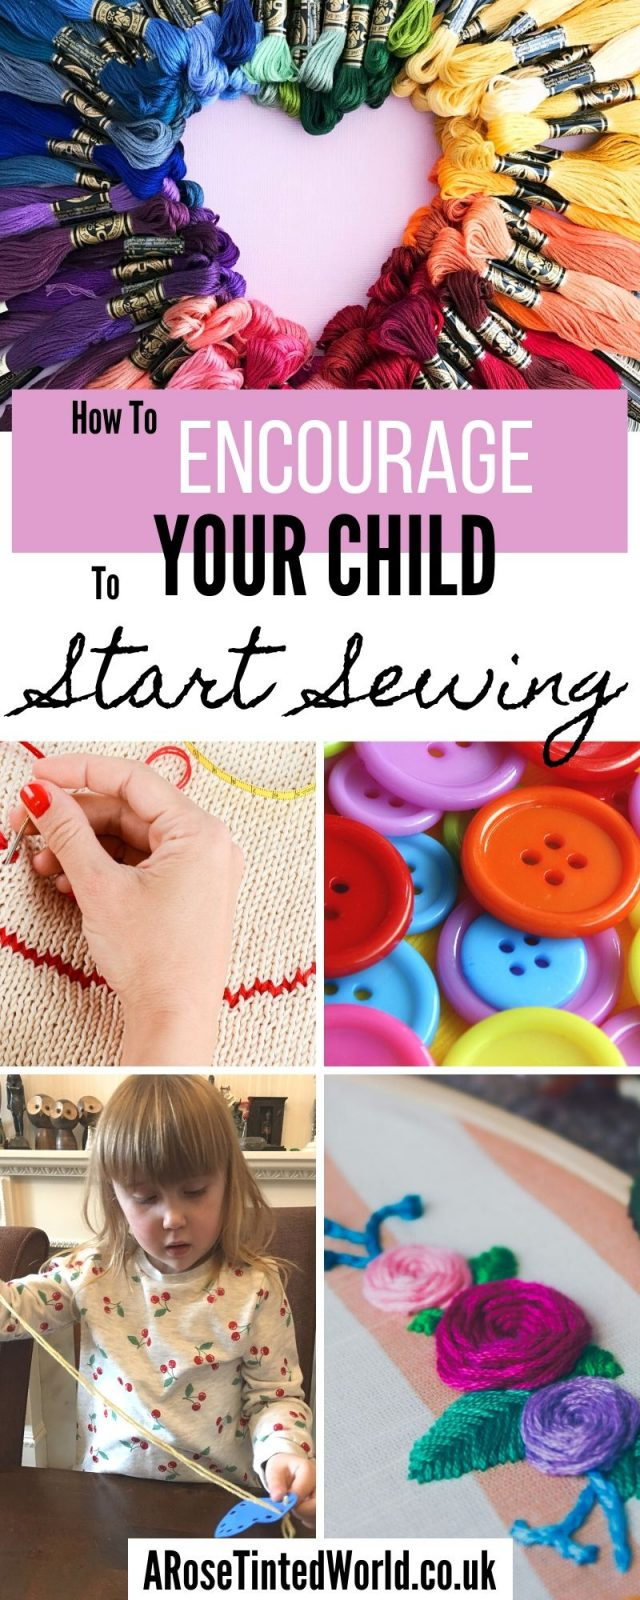 Encouraging Children to Start Sewing when young may lead to a great hobby as they get older. Find out ways to get all ages starting to sew! #sewing #sewingforbeginners #childrenscrafts #sewingwithkids #beginnerssewingprojects #beginnersewing